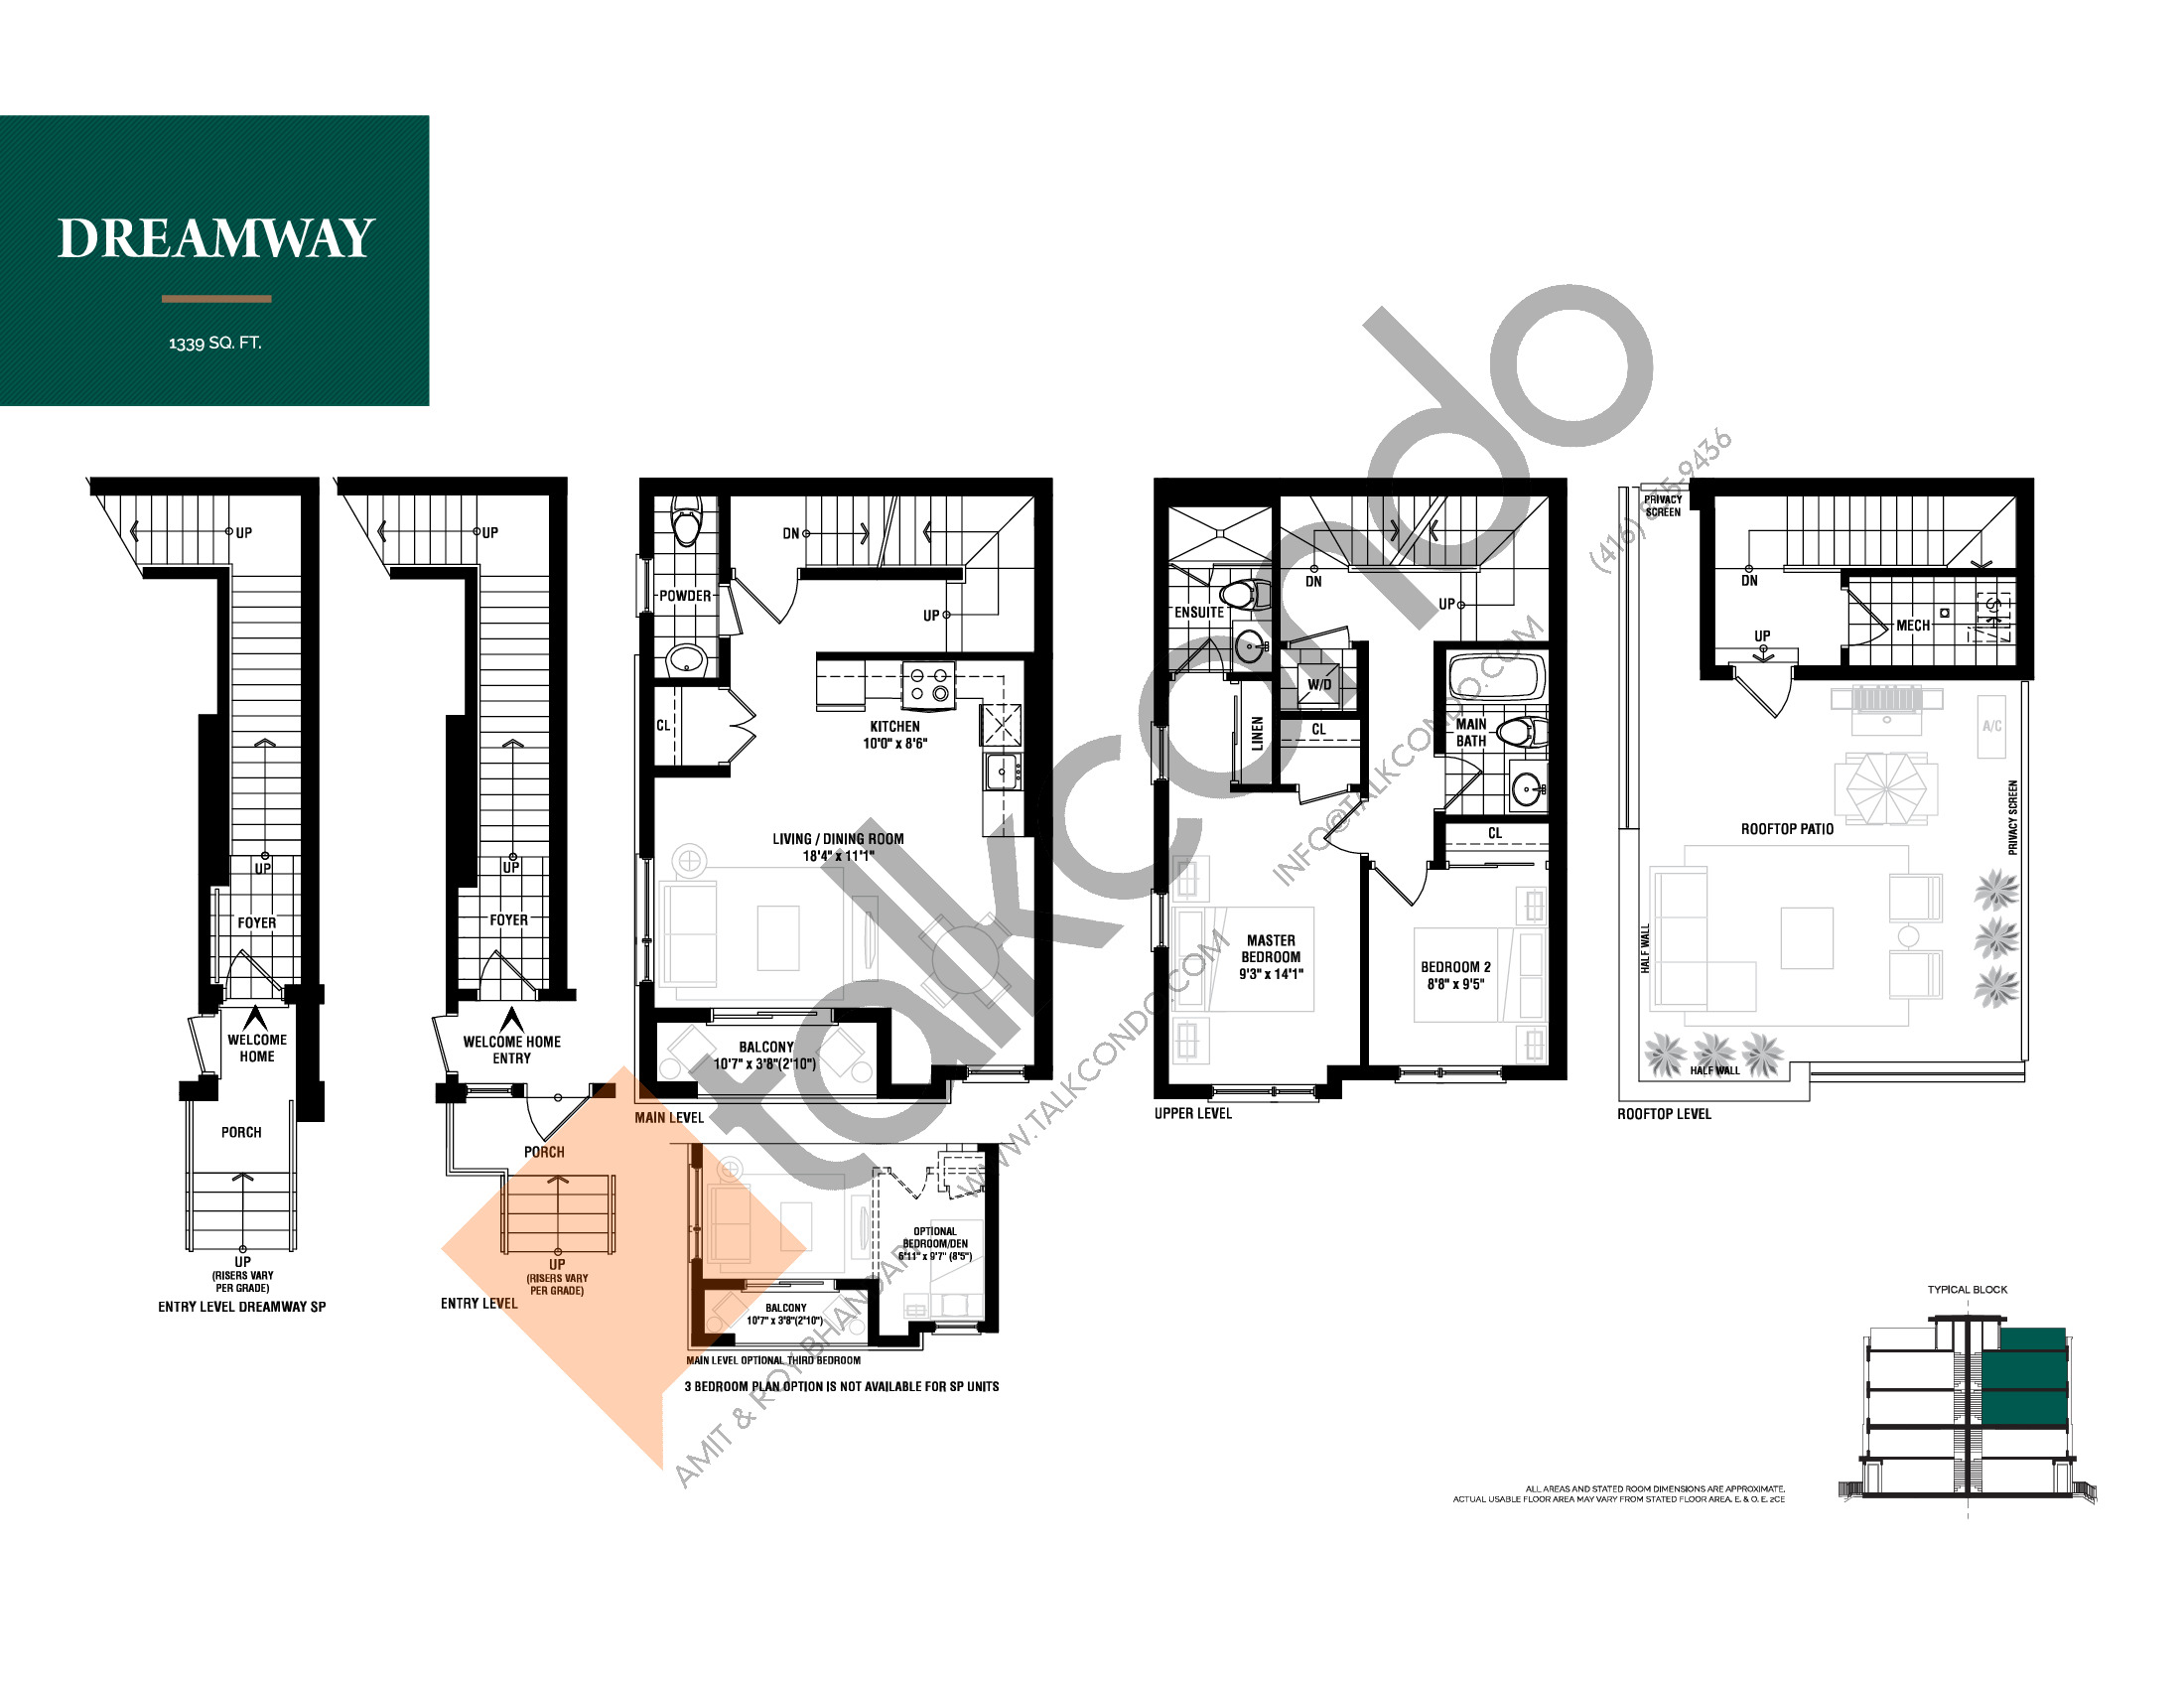 Dreamway Floor Plan at The Way Urban Towns - 1339 sq.ft